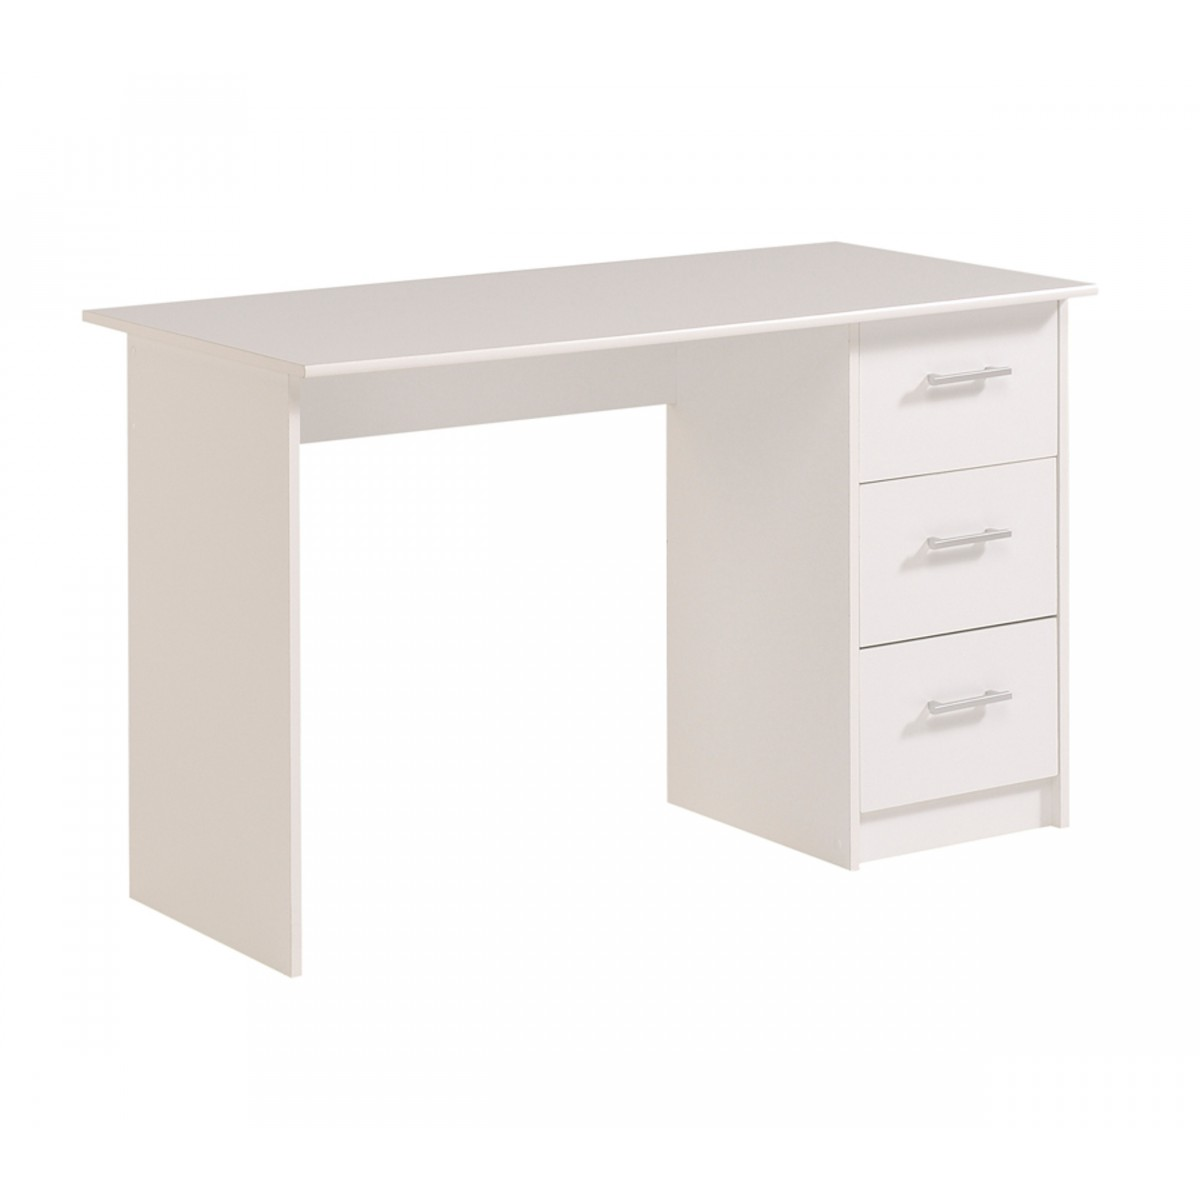 someo bureau en bois blanc mgve june. Black Bedroom Furniture Sets. Home Design Ideas